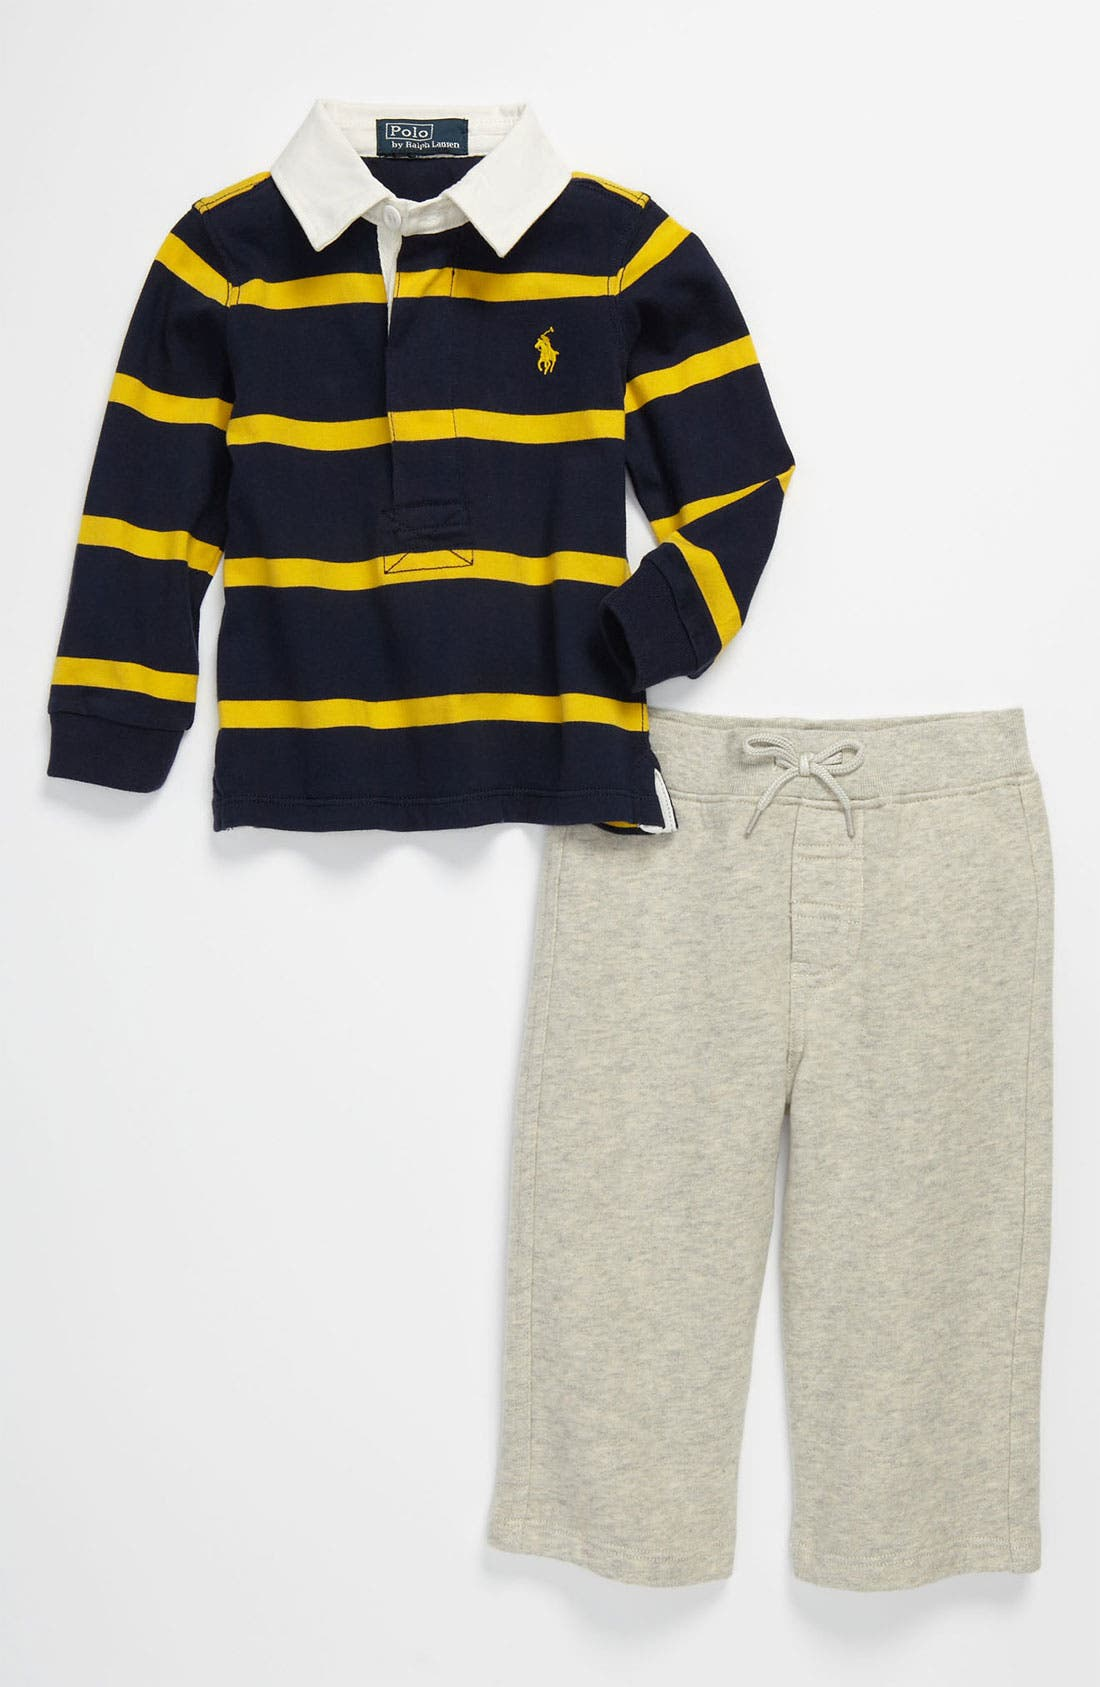 Main Image - Ralph Lauren Stripe Shirt & Pants (Infant)